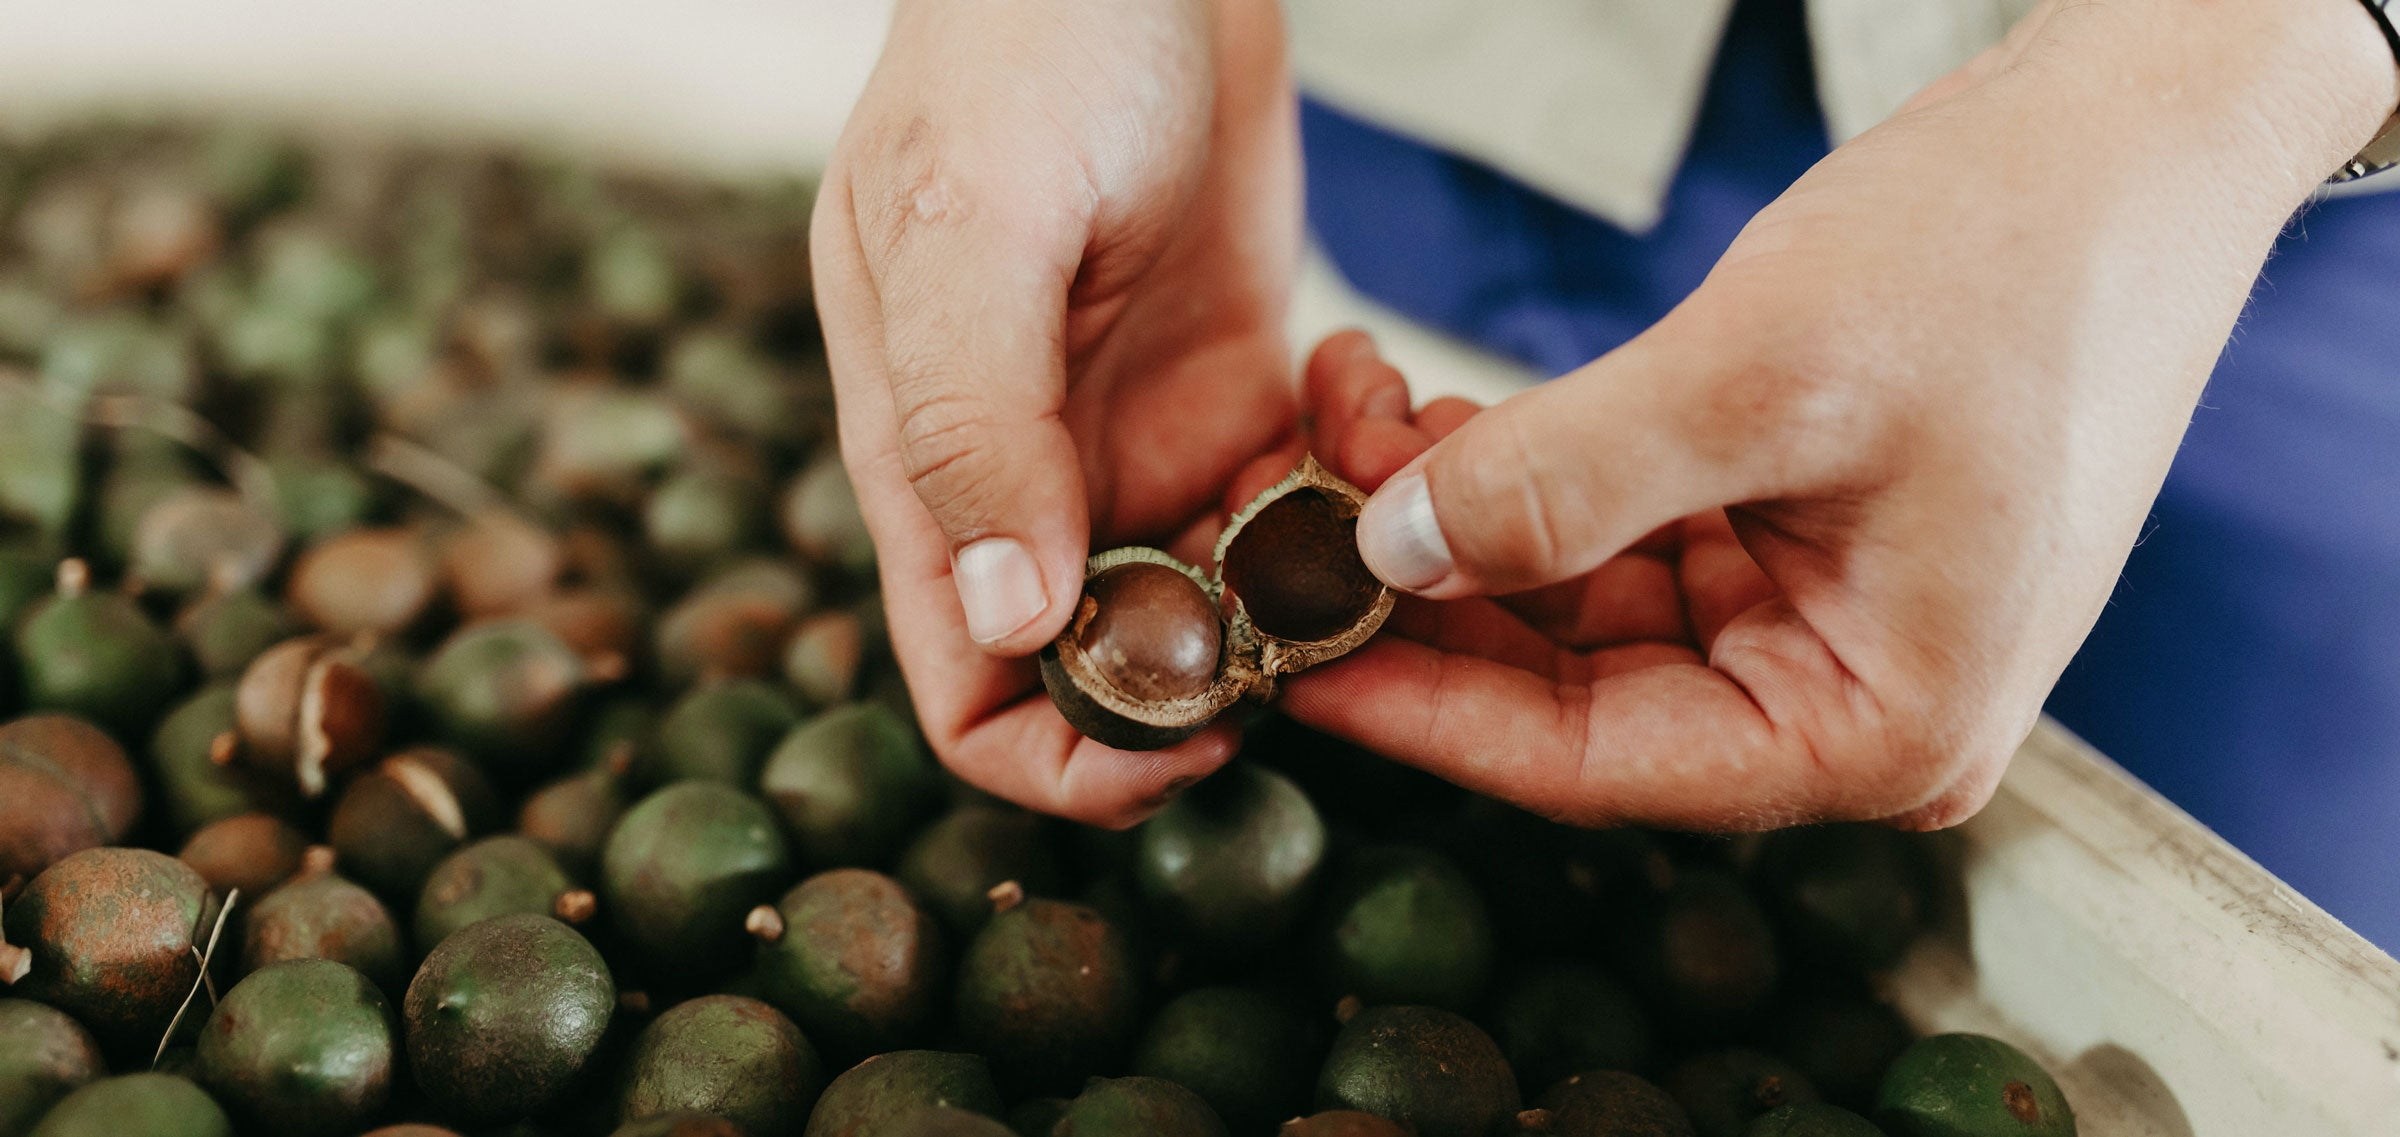 Maison Macolat Single Origin Macadamia Nuts from South Africa. The highest grade of Macadamia Nuts